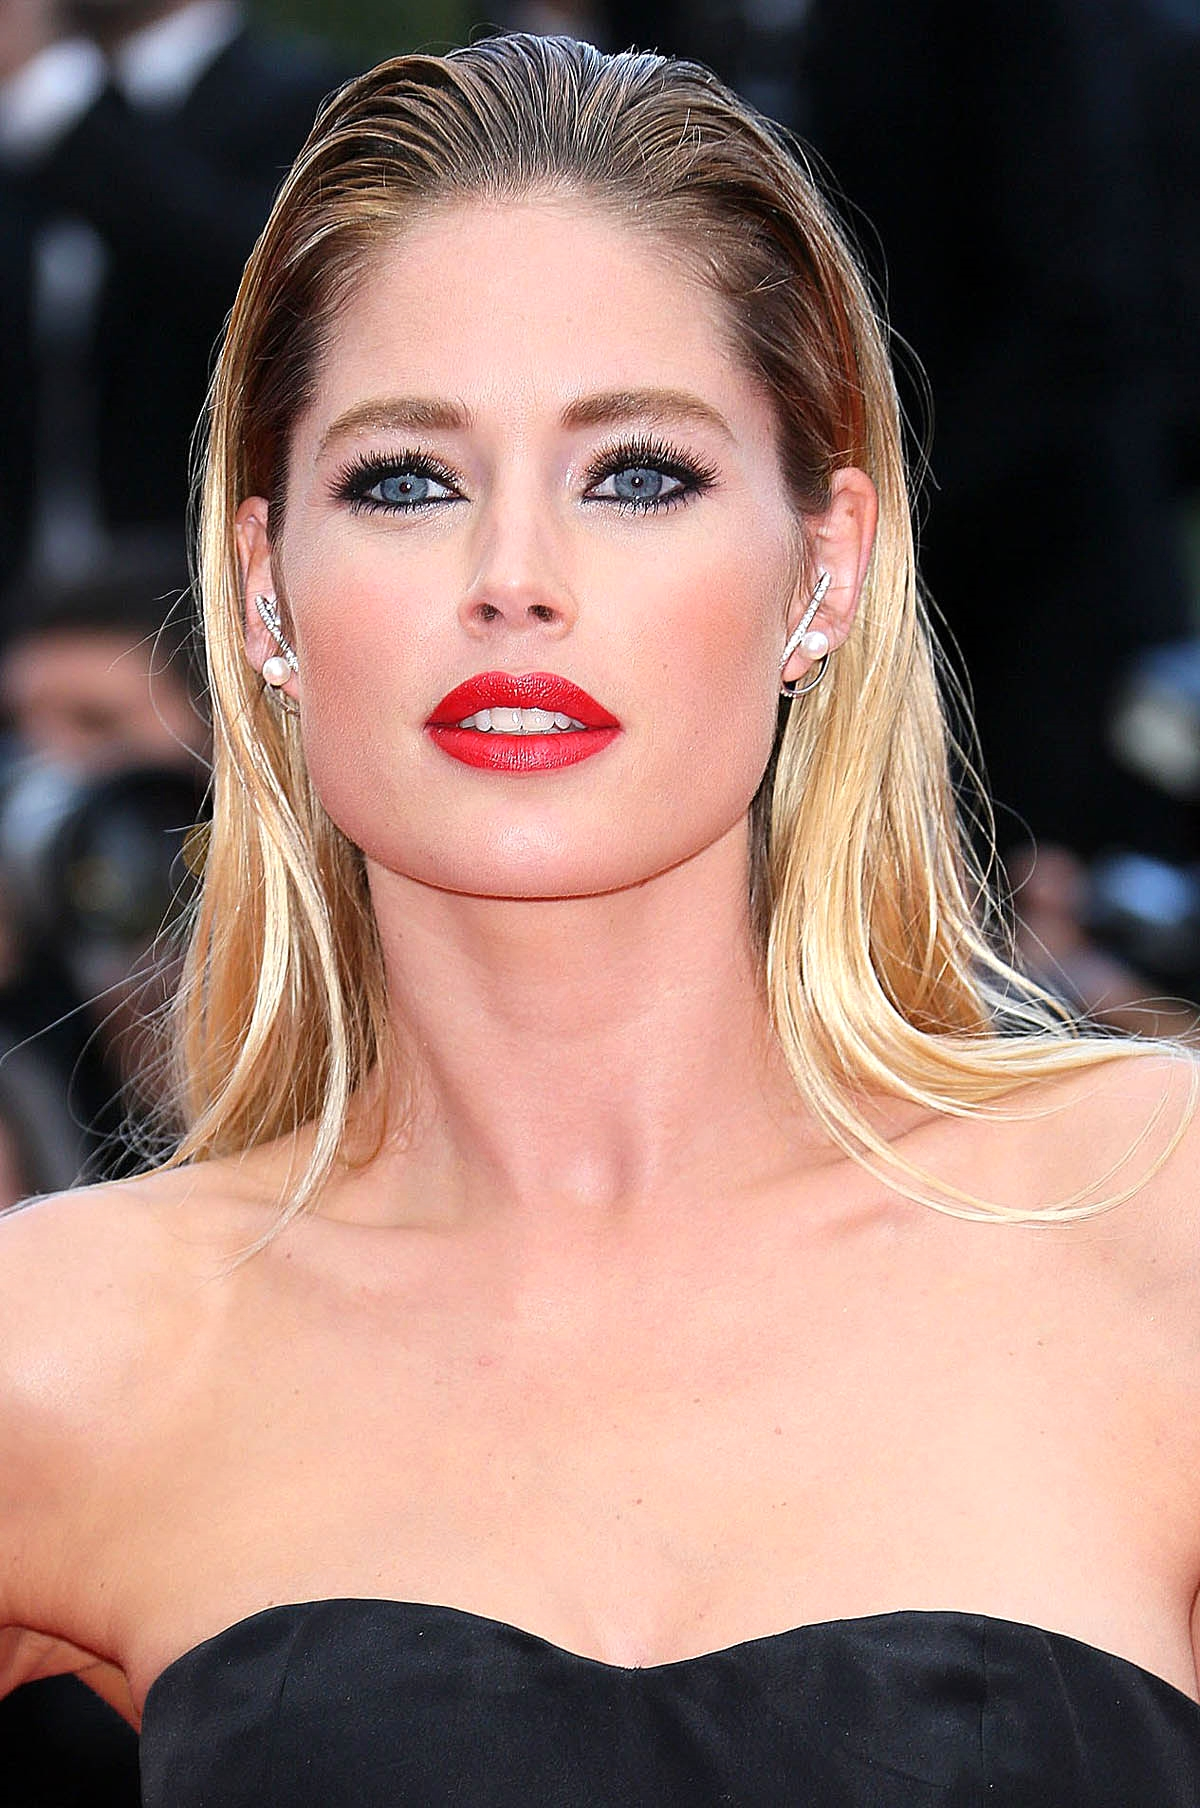 Doutzen Kroes at the 'Sicario' premiere     Photo by Getty